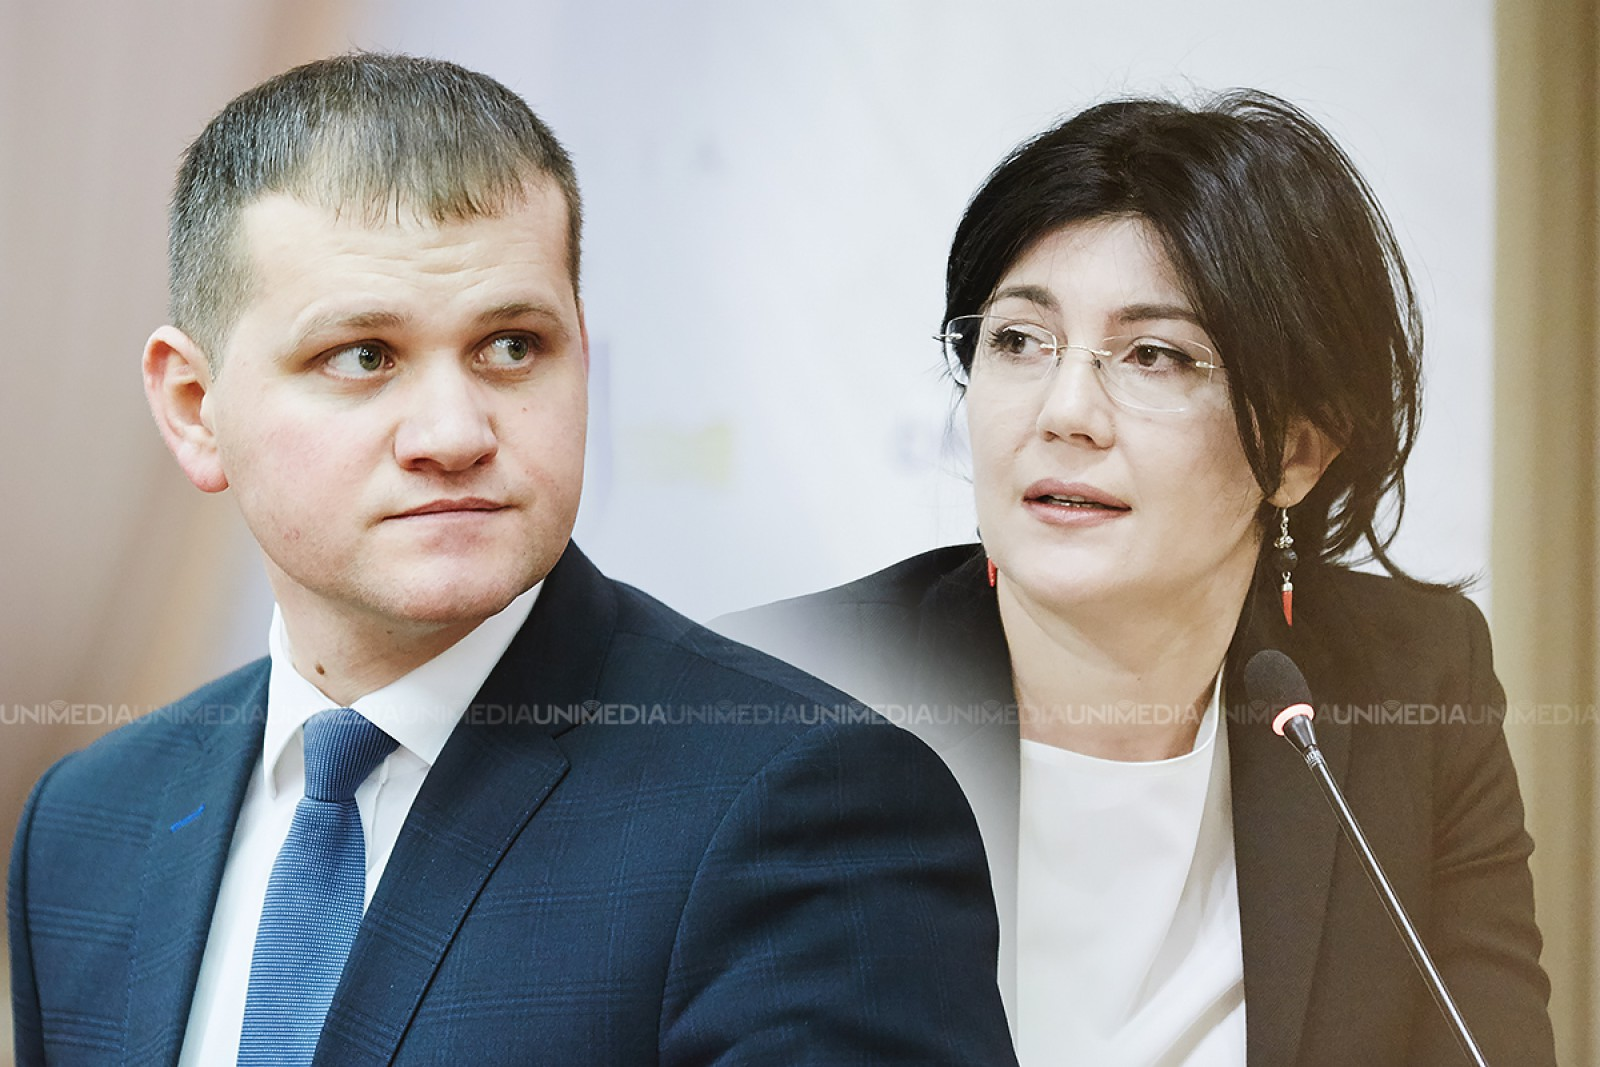 "(doc) Munteanu sesizează CEC și CCA referitor la acțiunile întreprinse de Silvia Radu: ""Utilizează resurse administrative pentru promovarea în scrutinul electoral"""